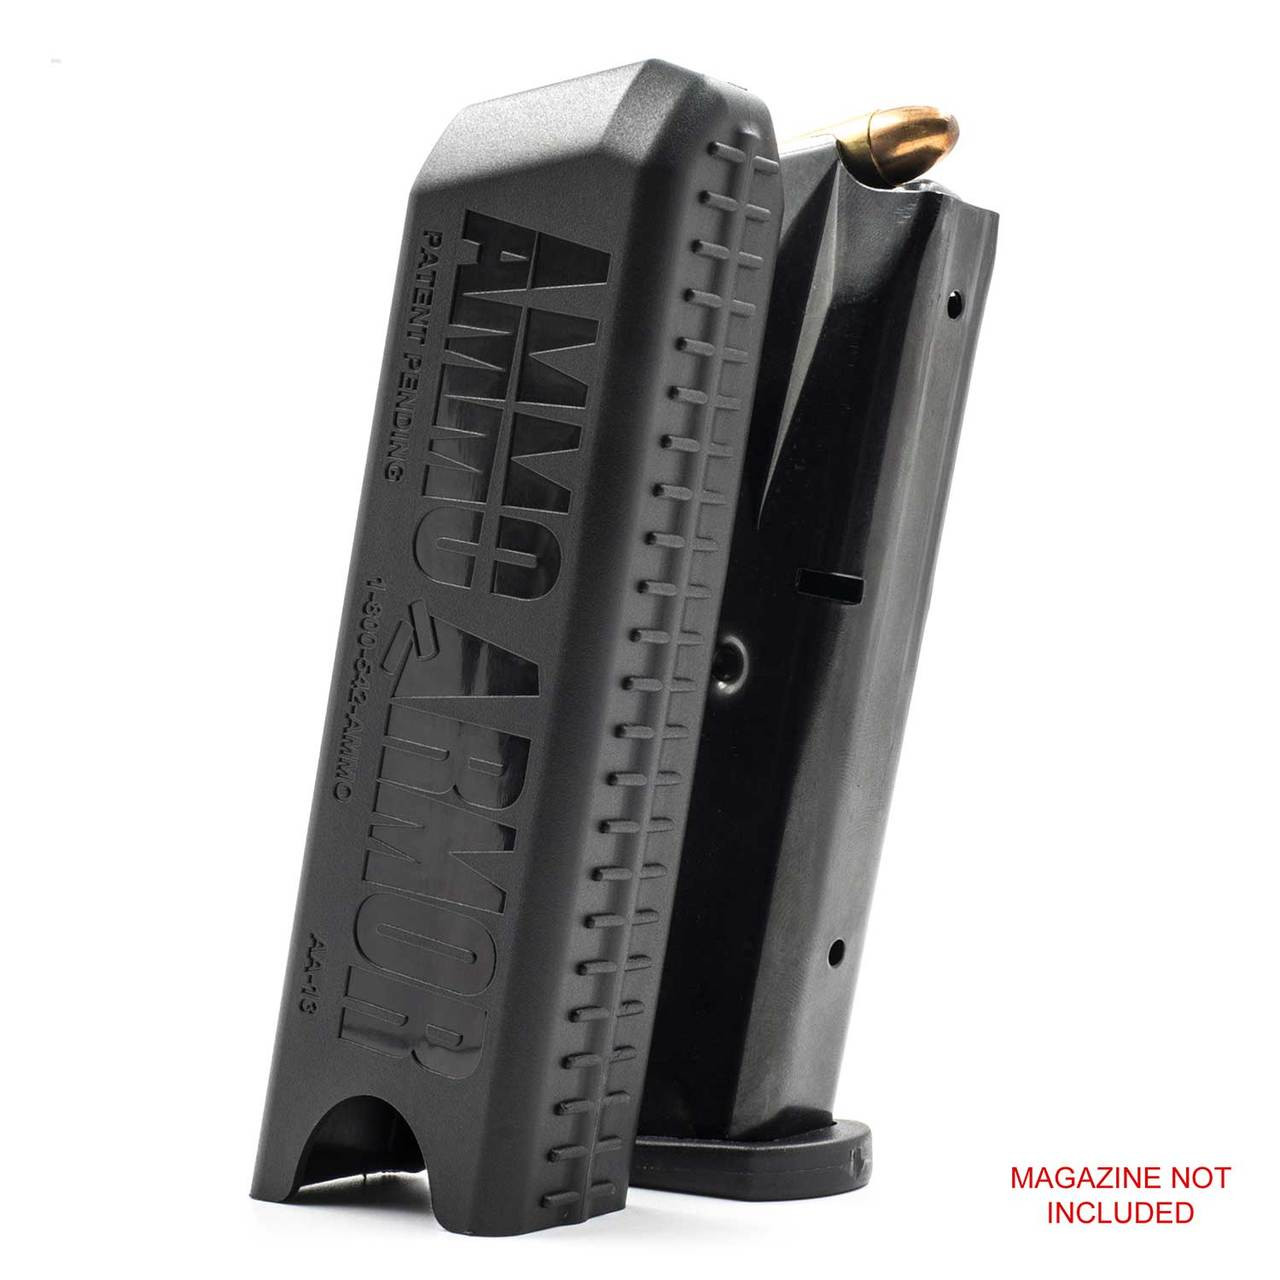 Walther PPQ M2 Magazine Protector